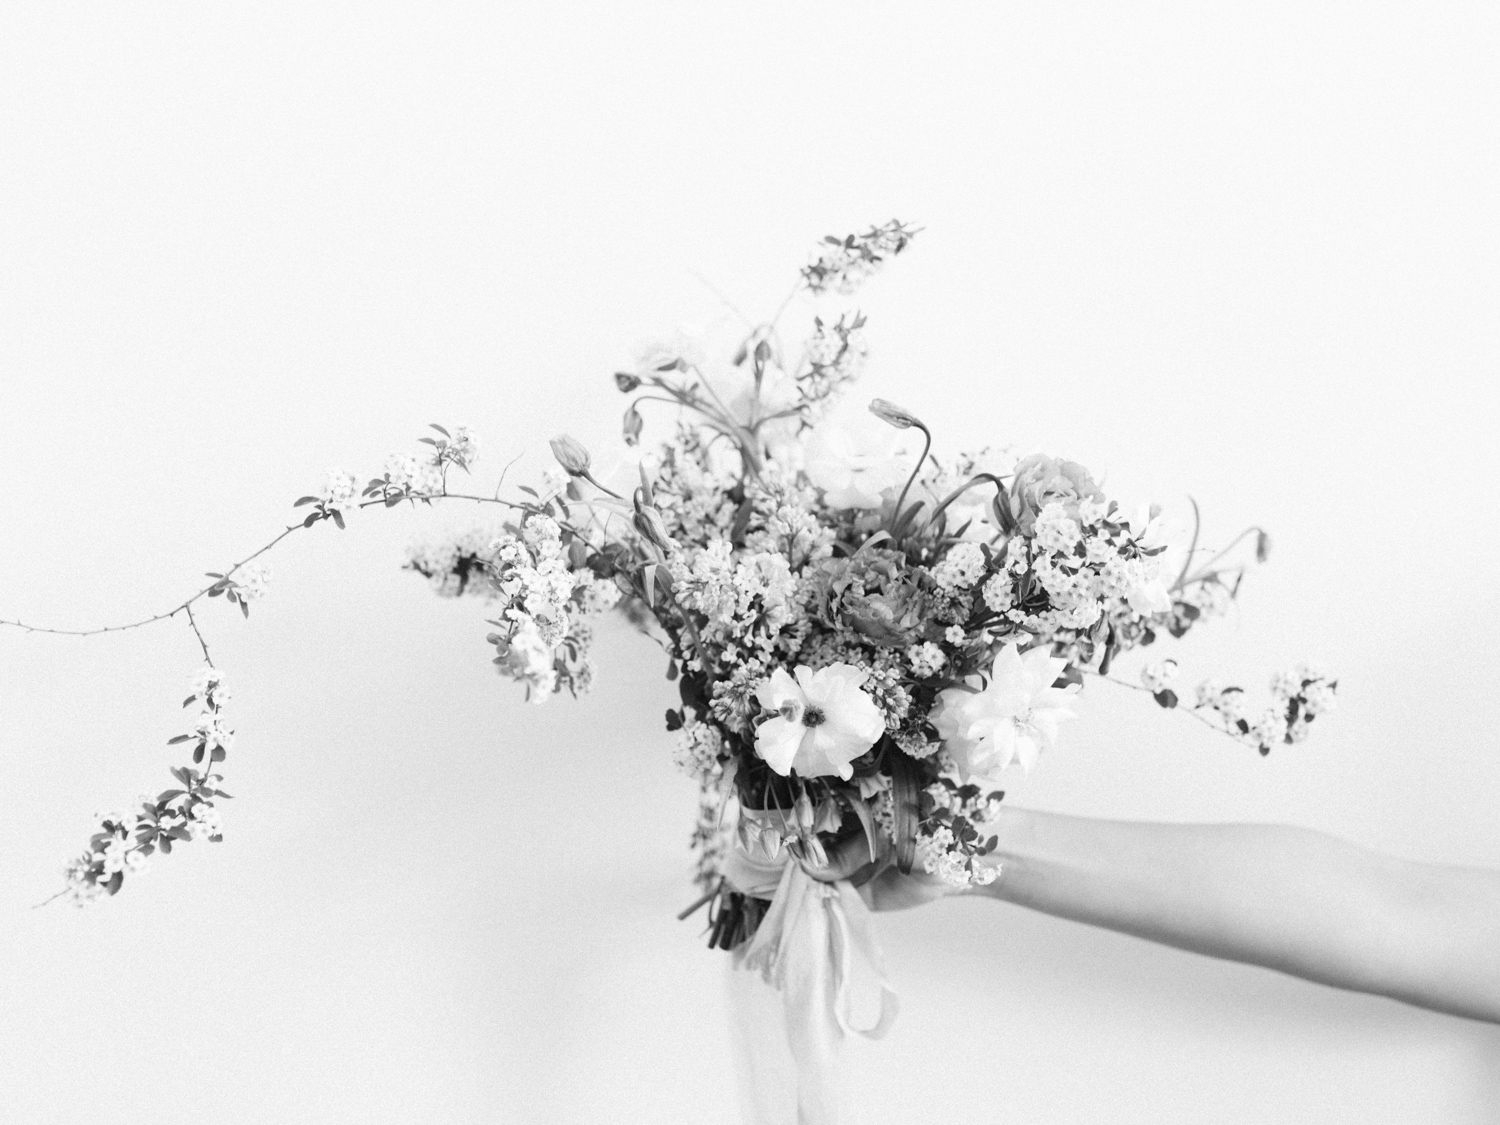 An untamed bouquet of spring flowering branches and white garden roses is held against a white wall